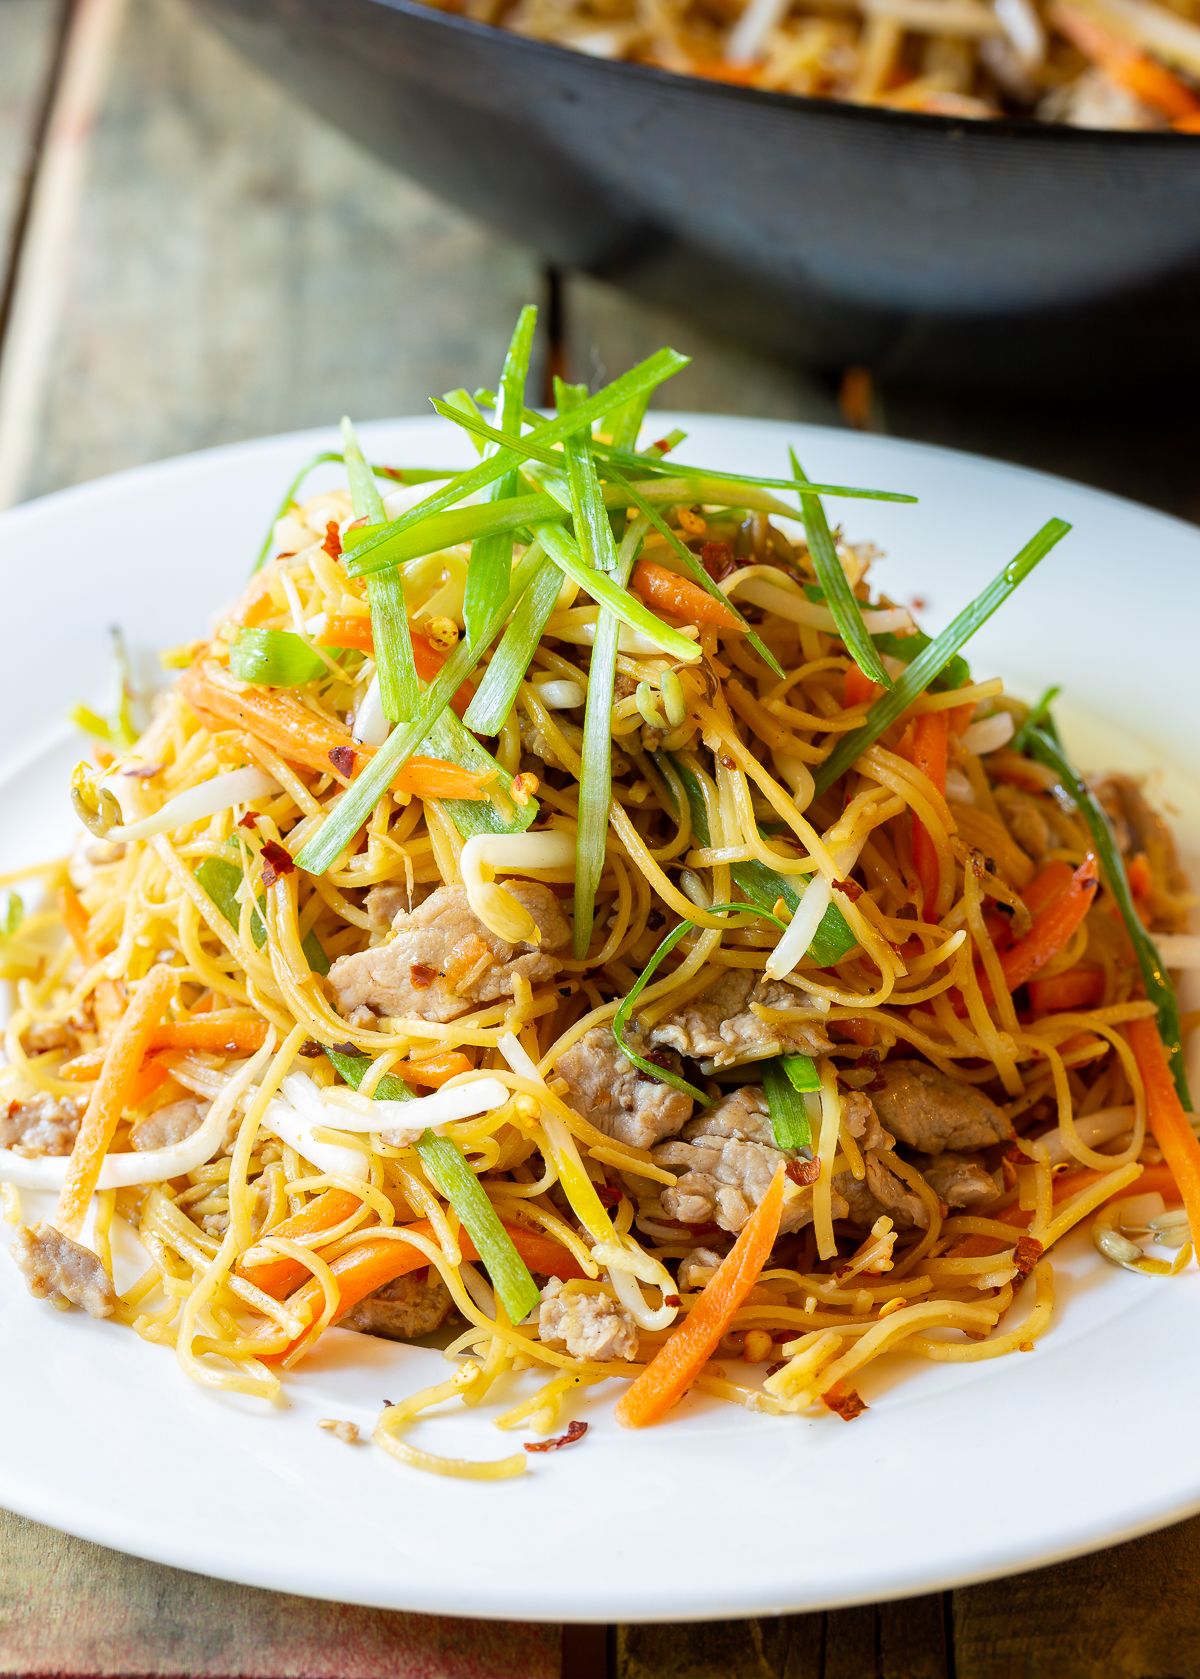 How To Make Cantonese Pan Fried Noodles (Pork Lo Mein)